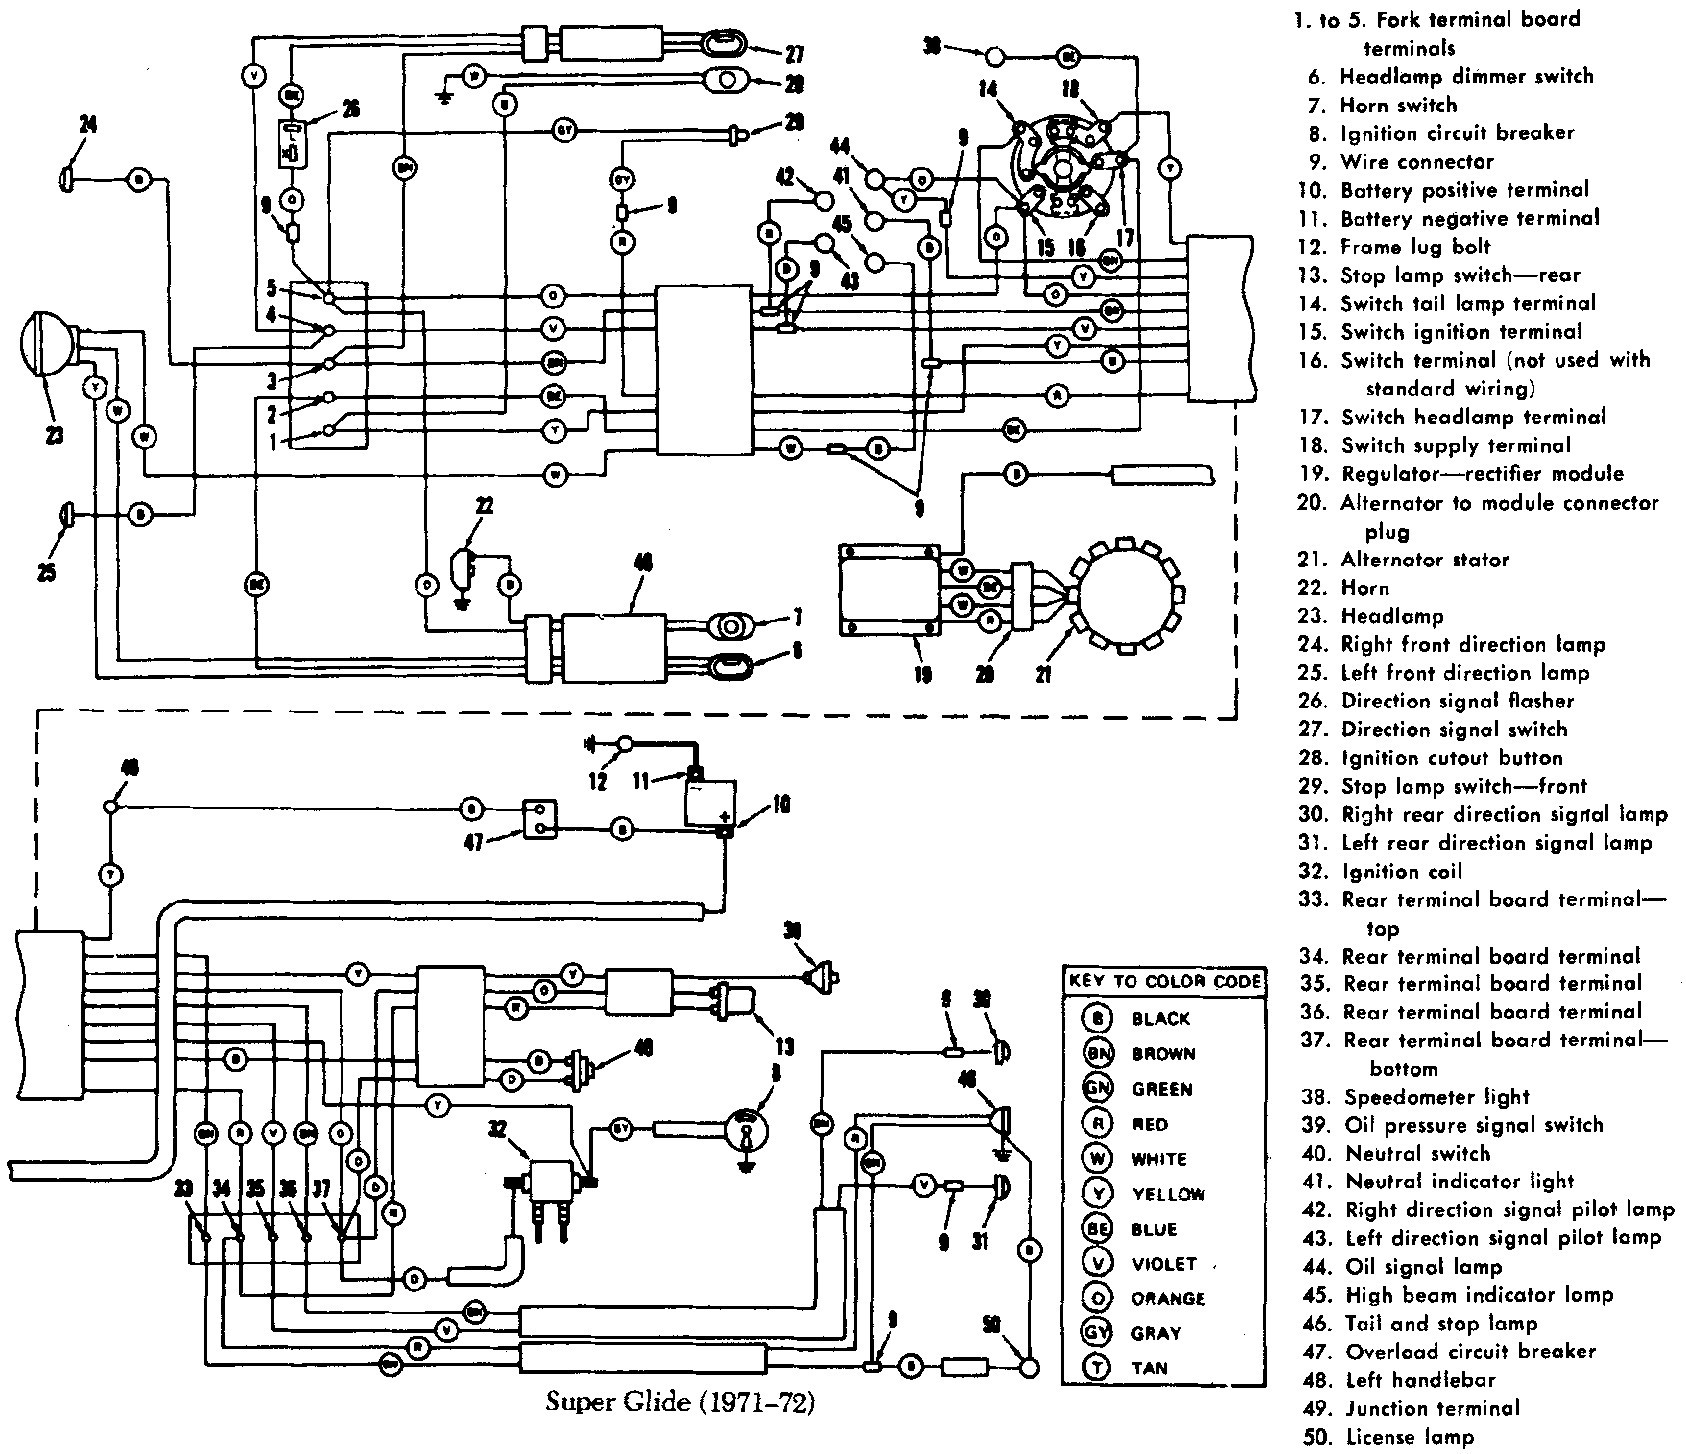 1990 Harley Fxrs Wiring Diagram | Wiring Diagram on